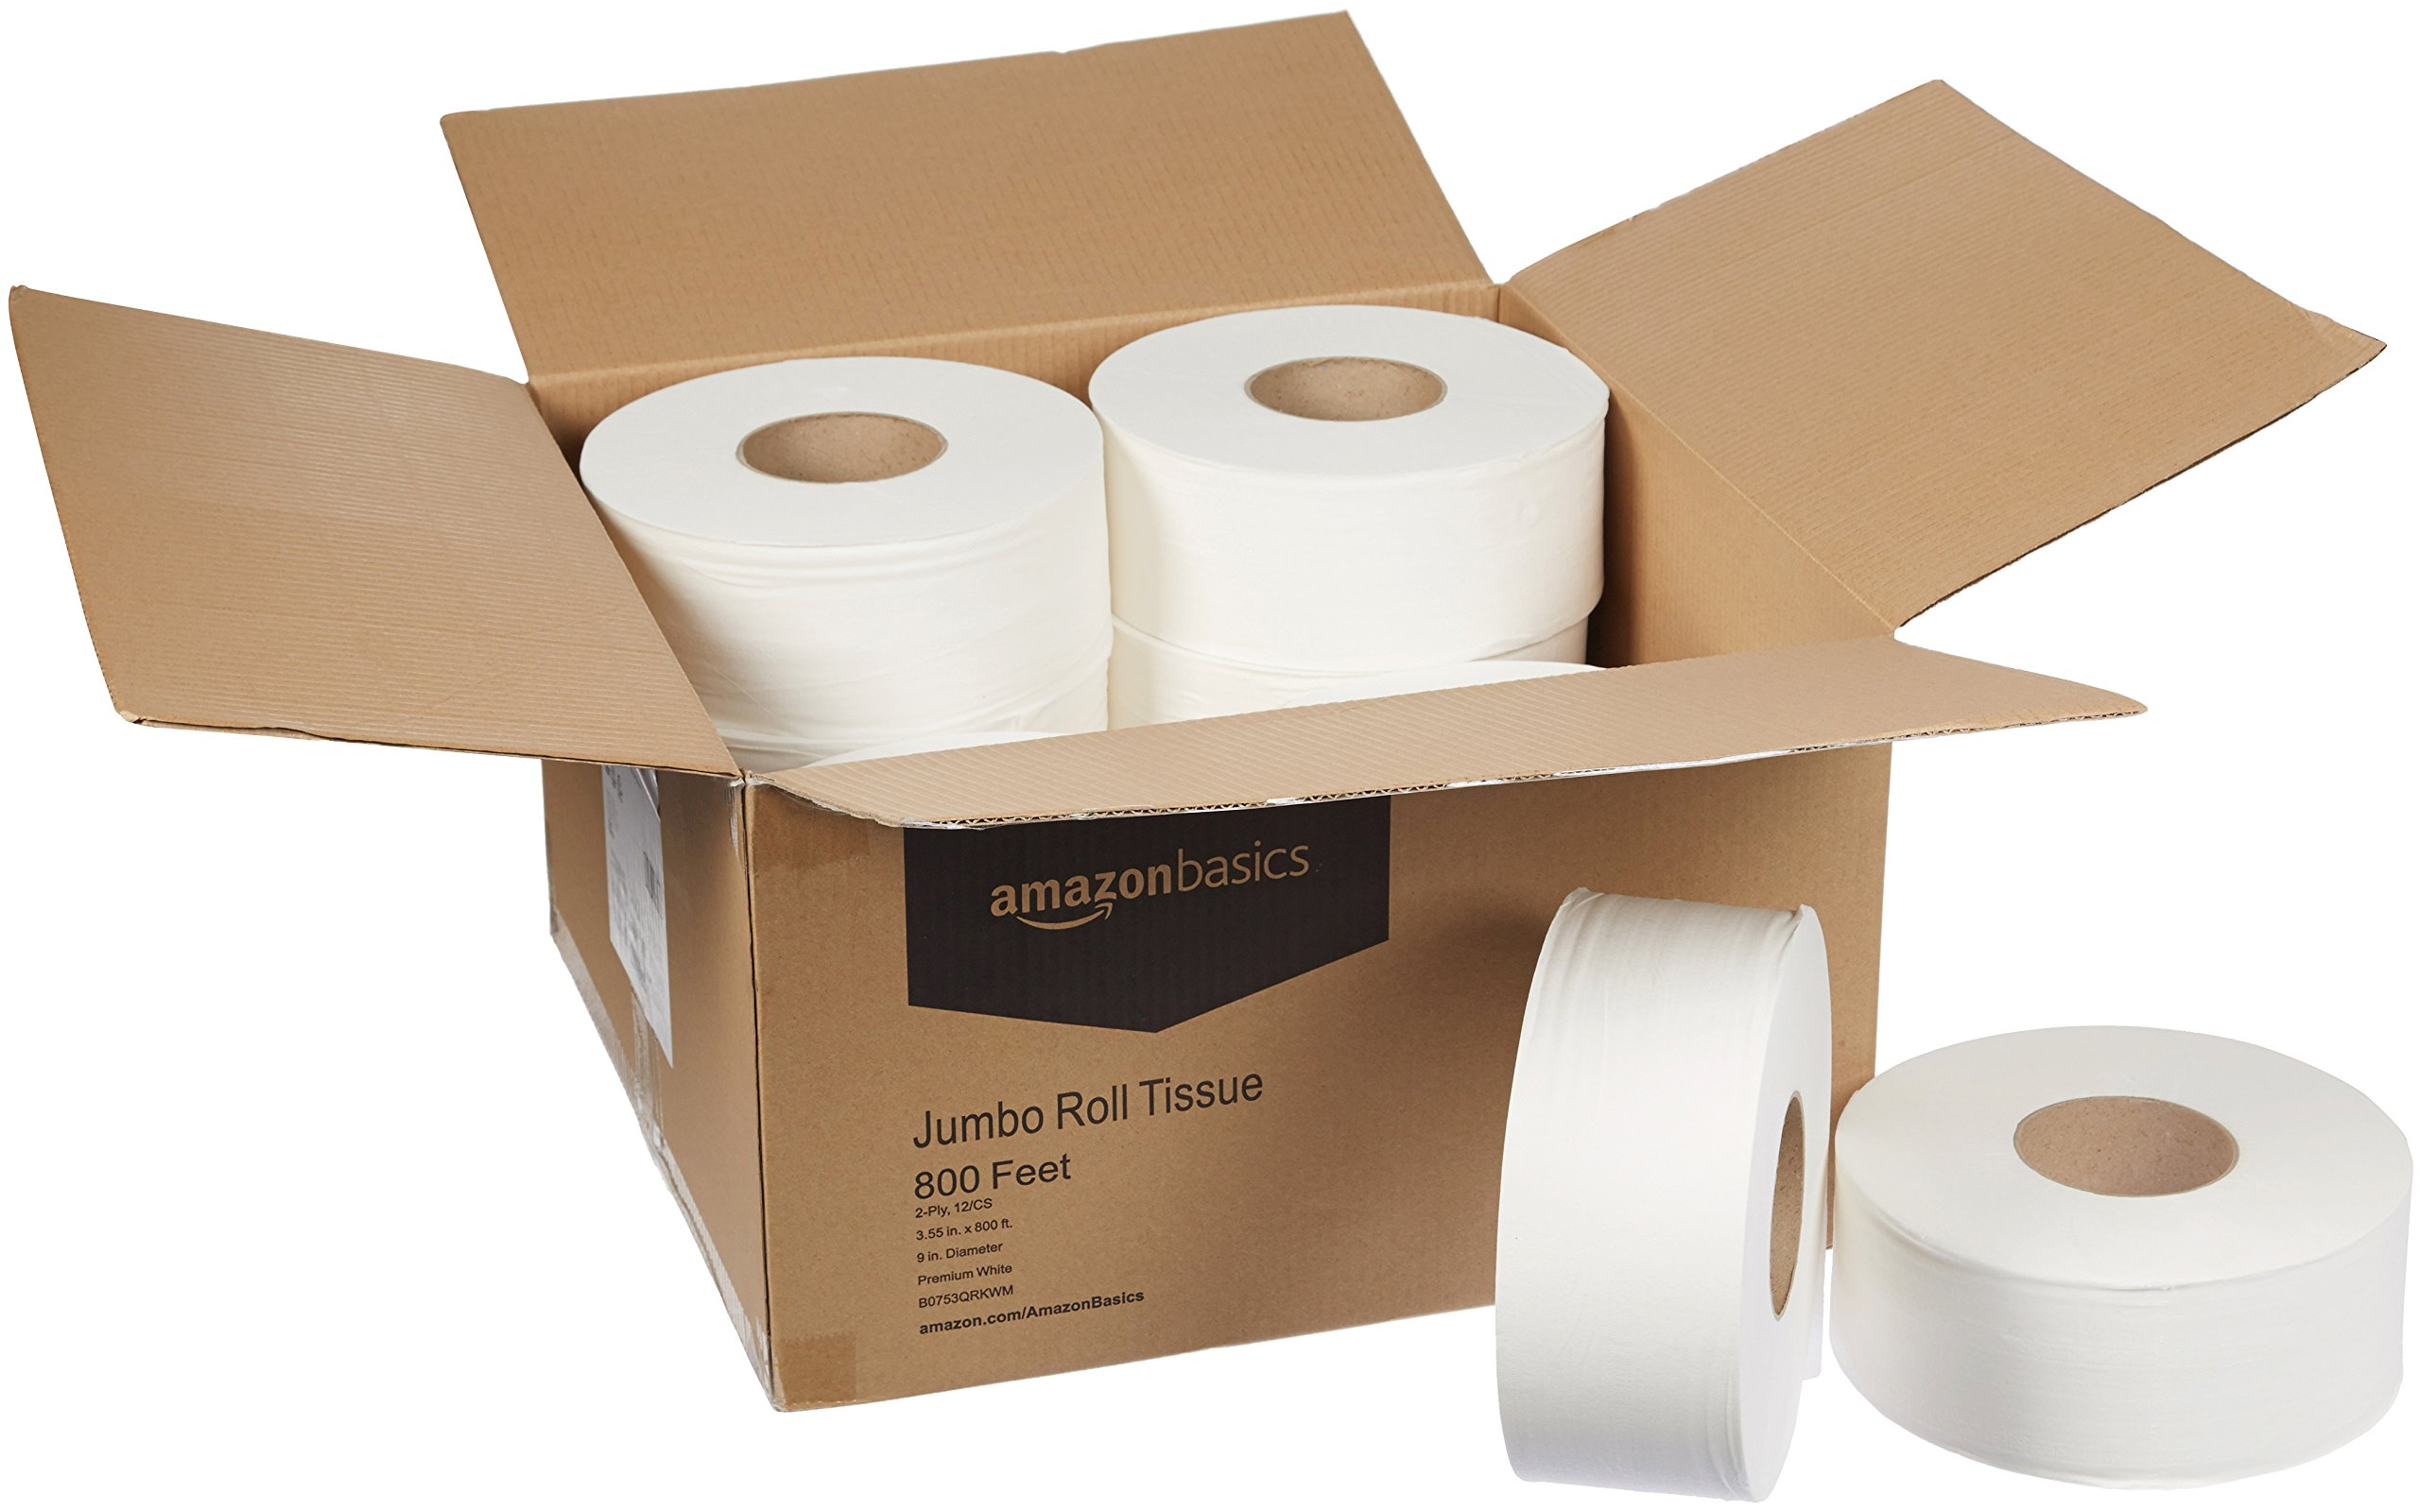 AmazonBasics Professional Jumbo Roll Toilet Tissue for Businesses, 2-Ply, 800 Feet per Roll, 12 Rolls by AmazonBasics (Image #4)